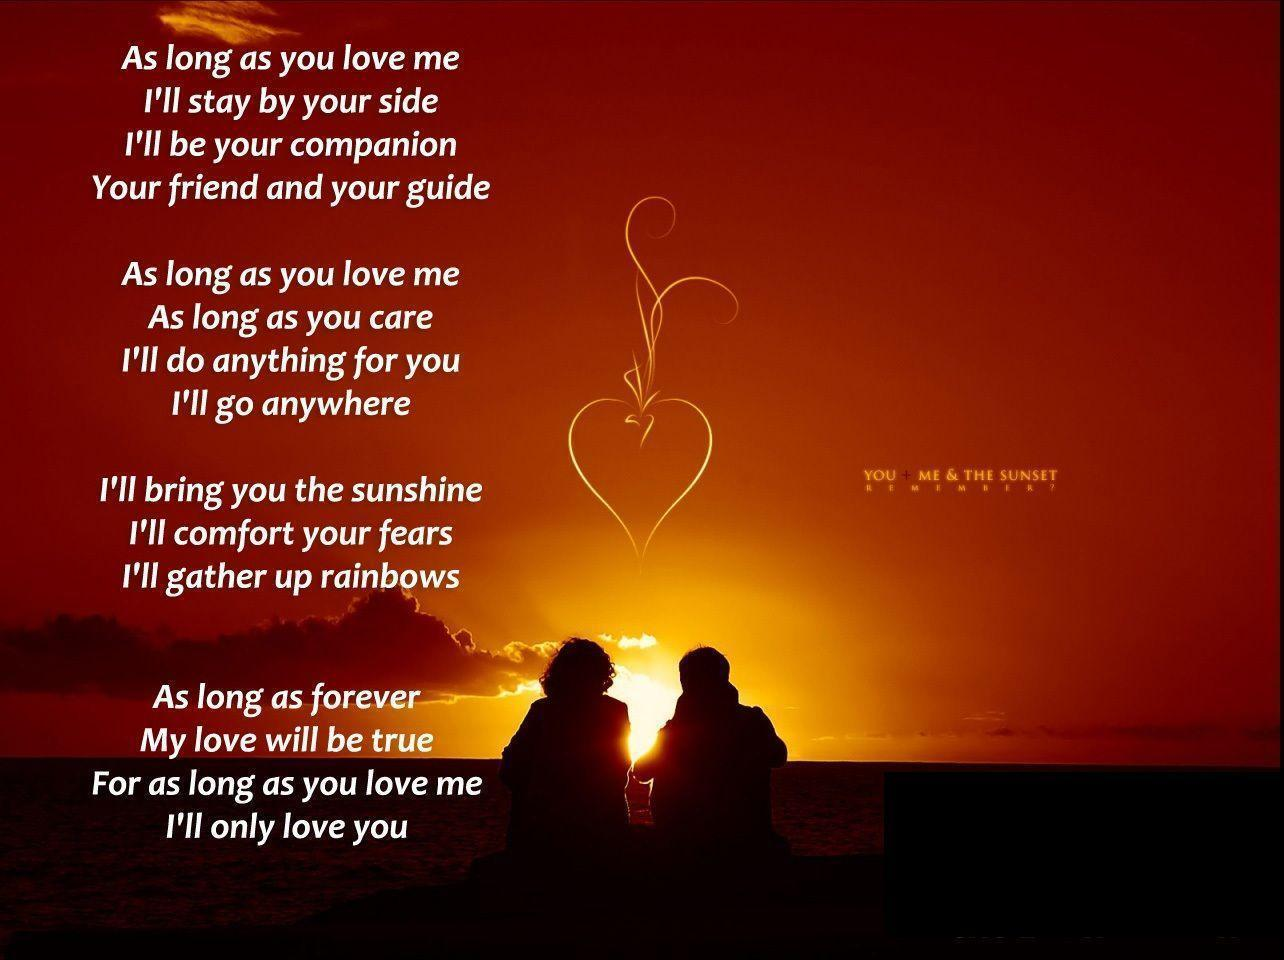 Love Wallpaper Hd Poetry : Love Poems Wallpapers - Wallpaper cave